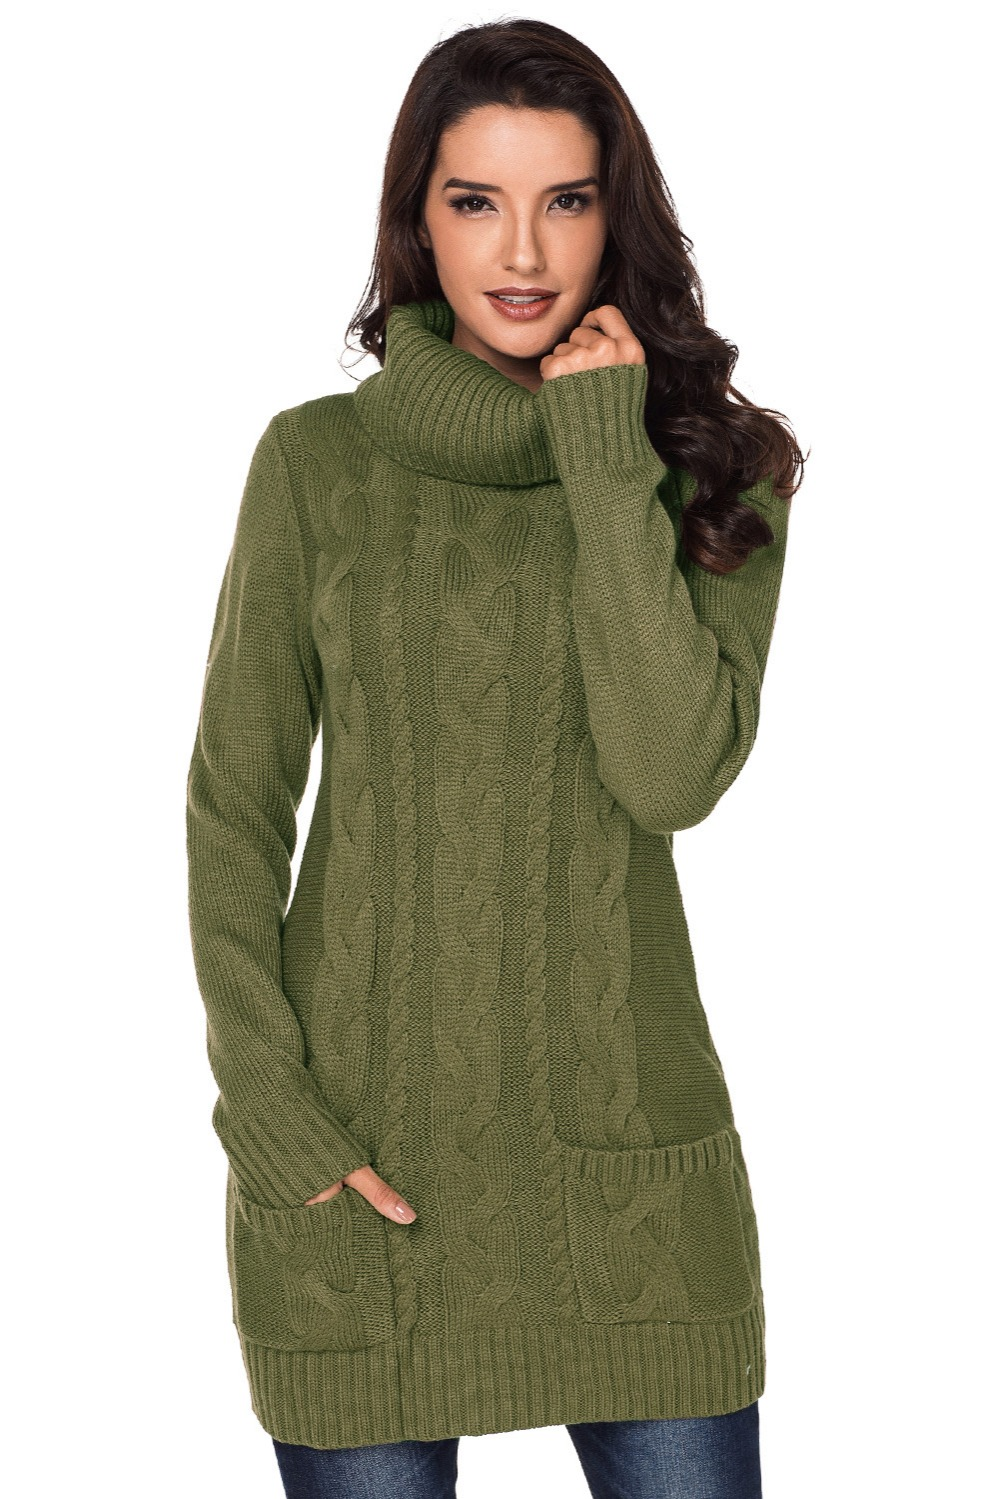 Olive-Cowl-Neck-Cable-Knit-Sweater-Dress-LC27836-9-1